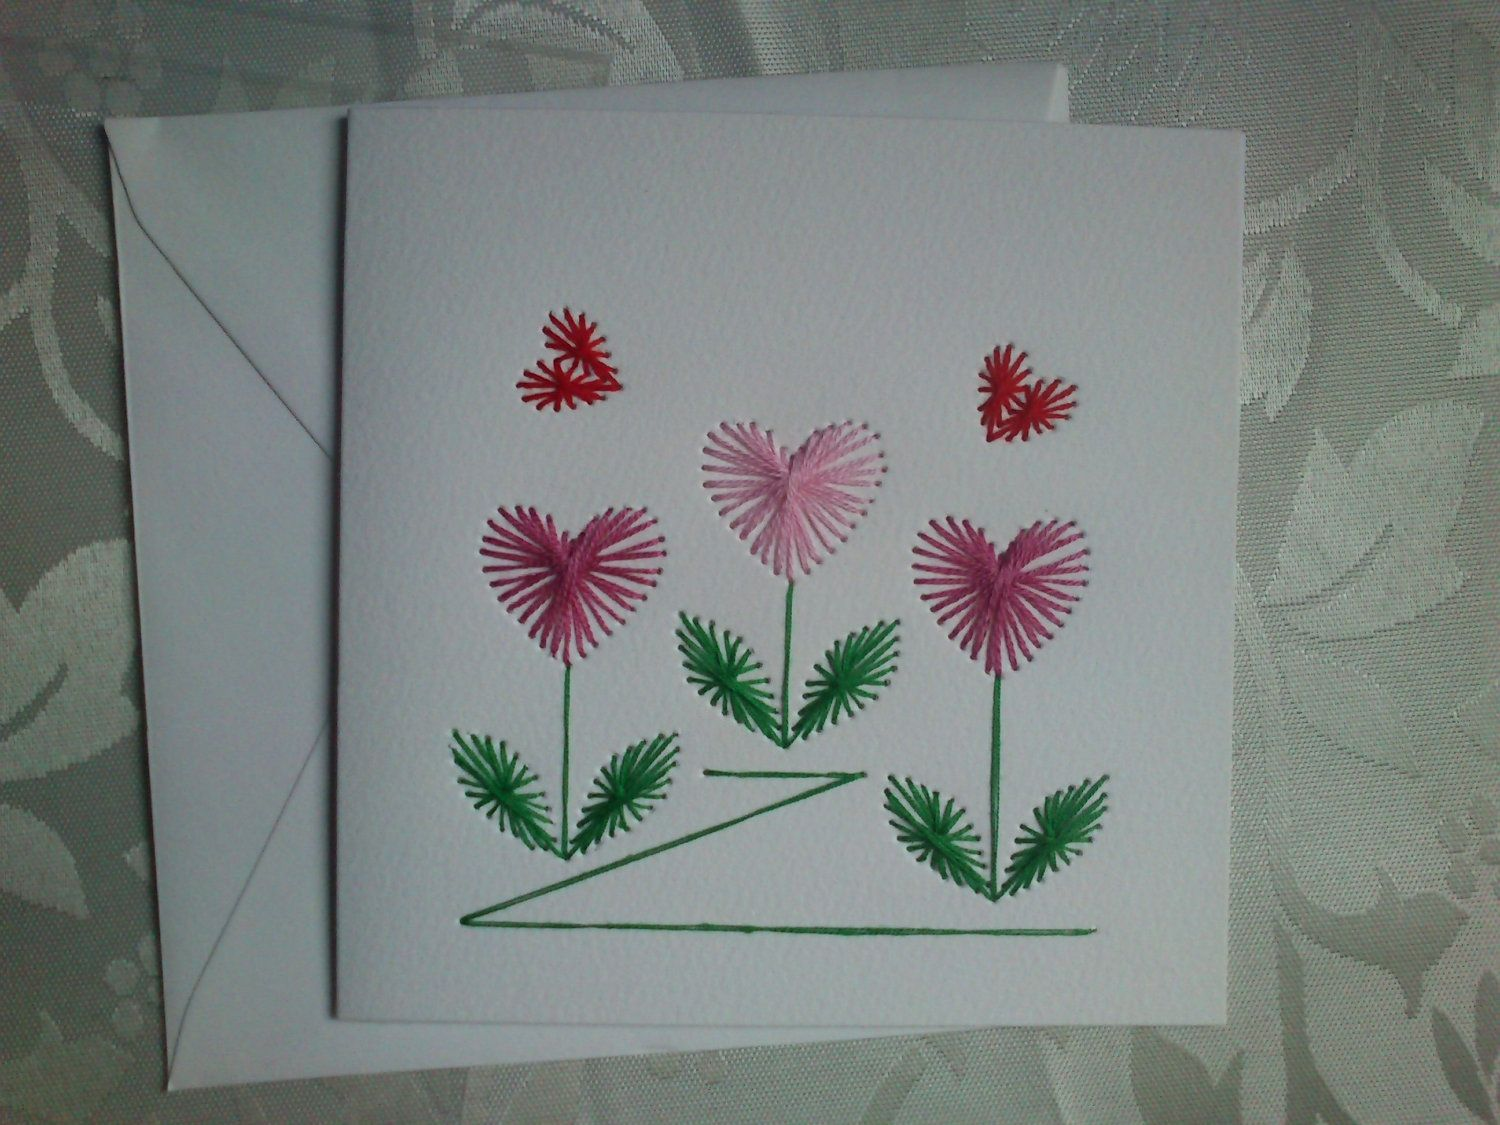 Paper Embroidery Greeting Card. Hearts design on a white